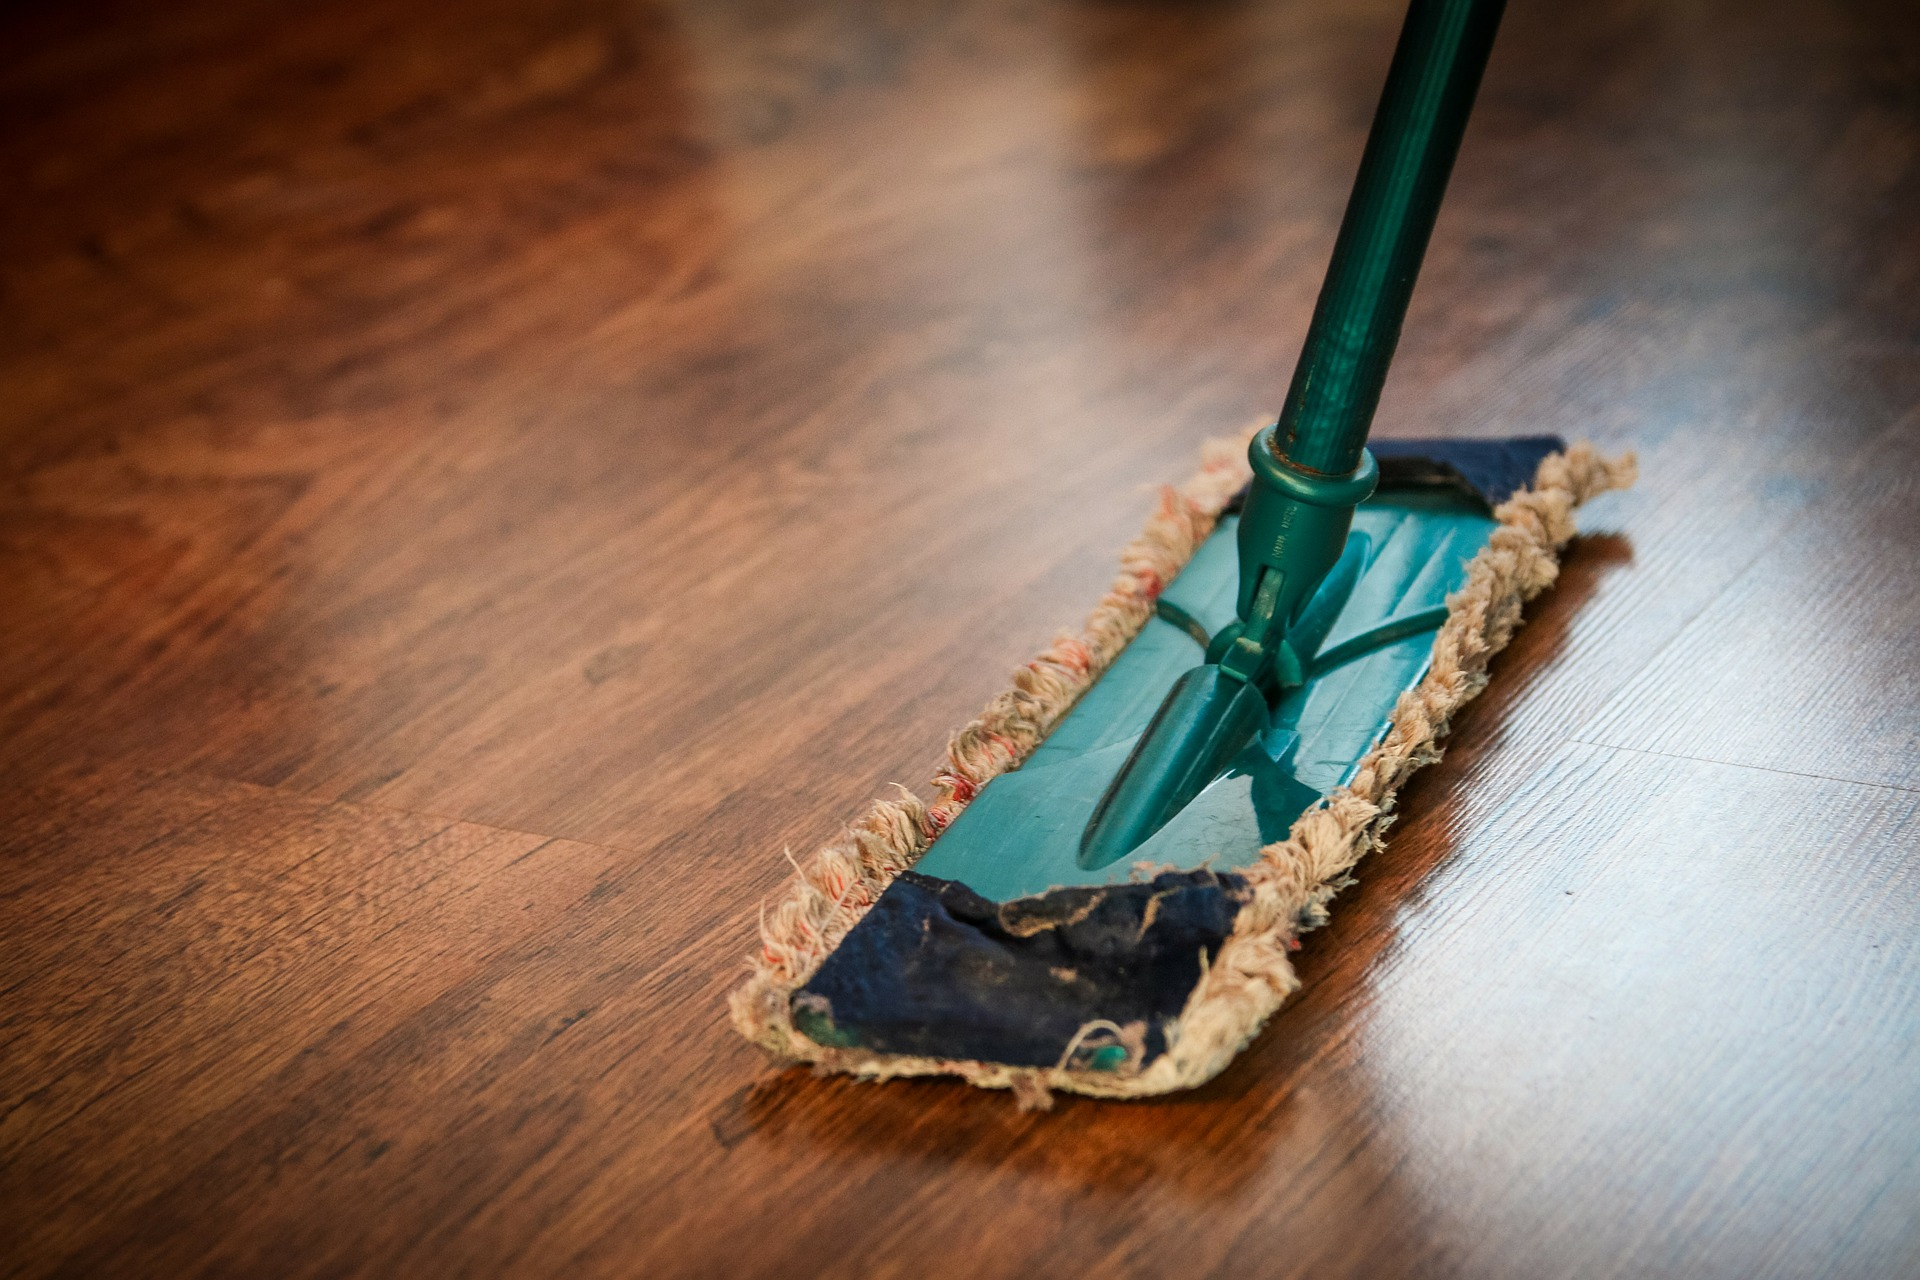 cleaning-268126_1920